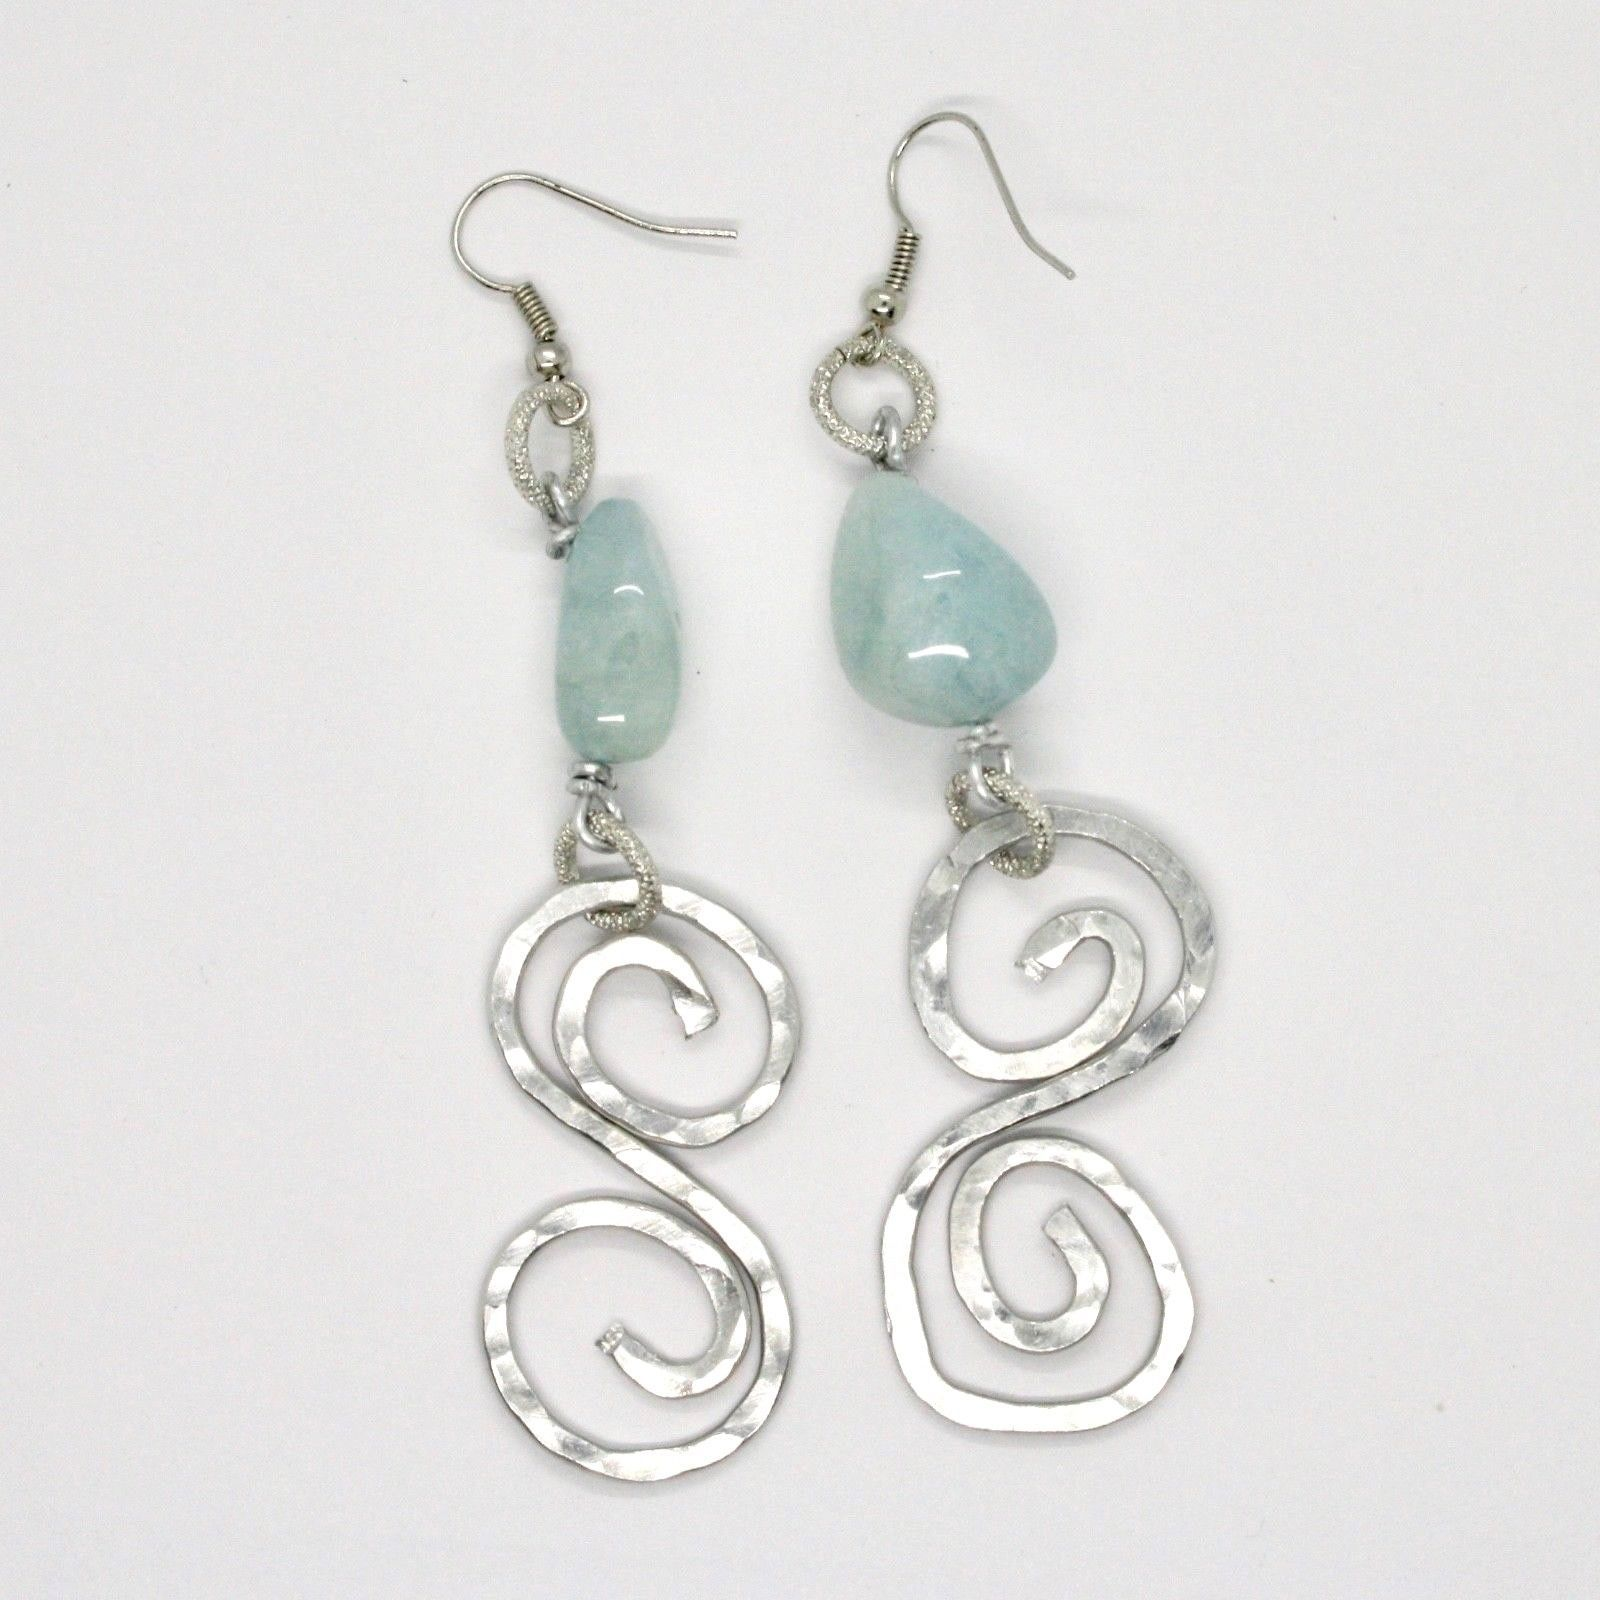 EARRINGS THE ALUMINIUM LONG 9 CM WITH AQUAMARINE NATURAL ROUGH AND SPIRAL